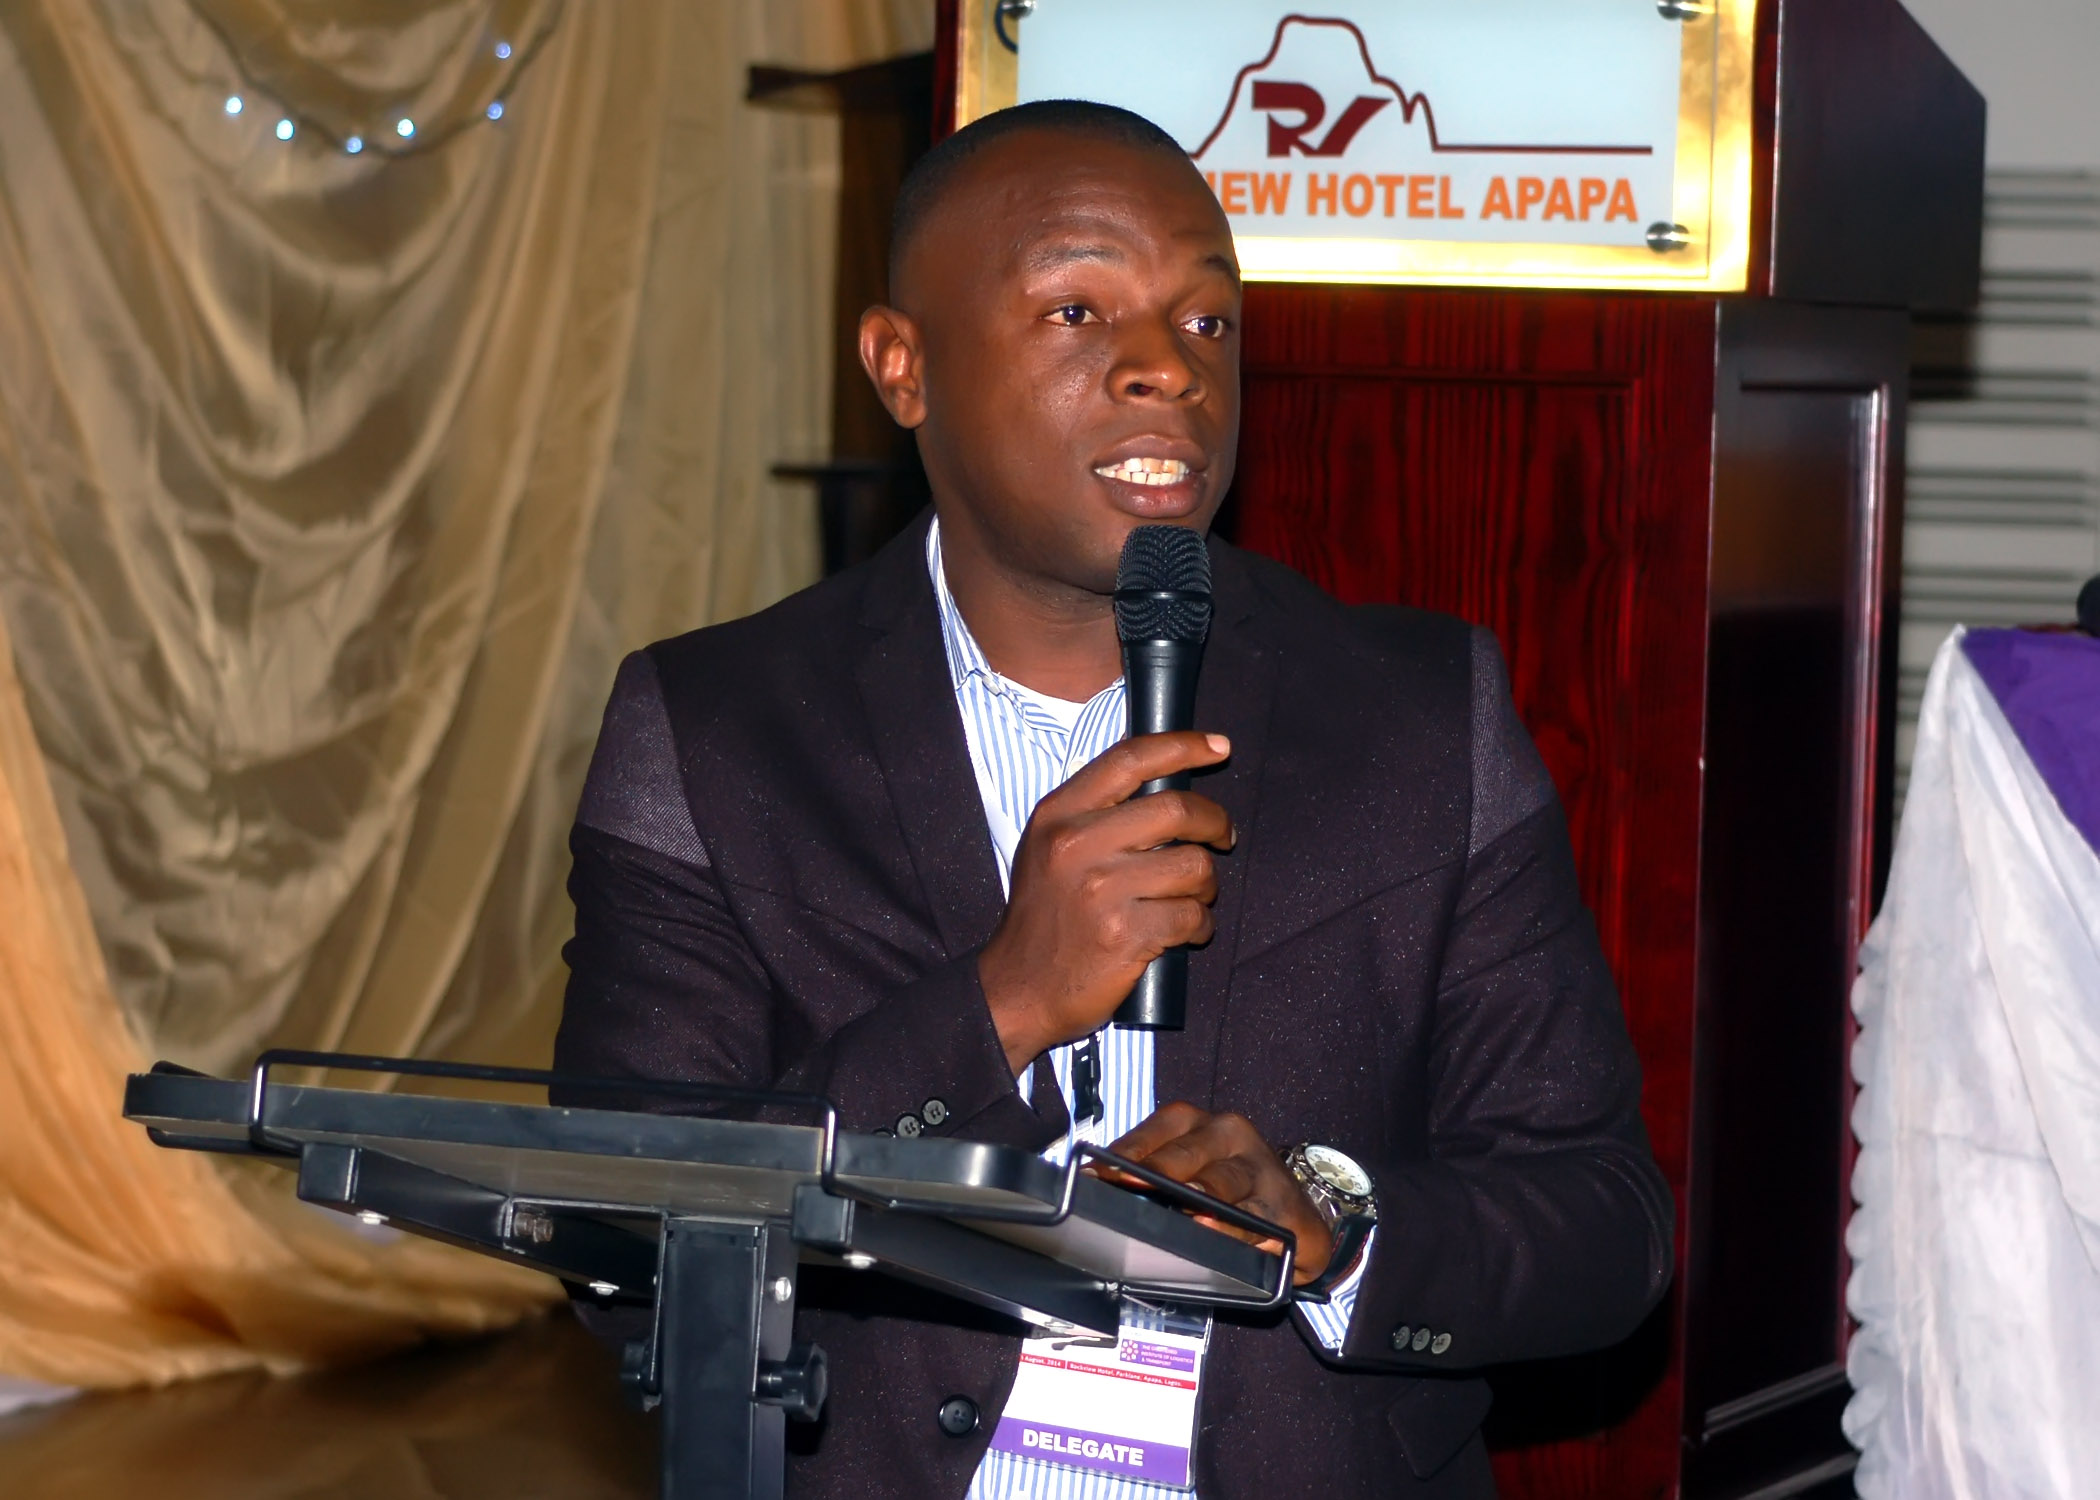 MC @ the conference